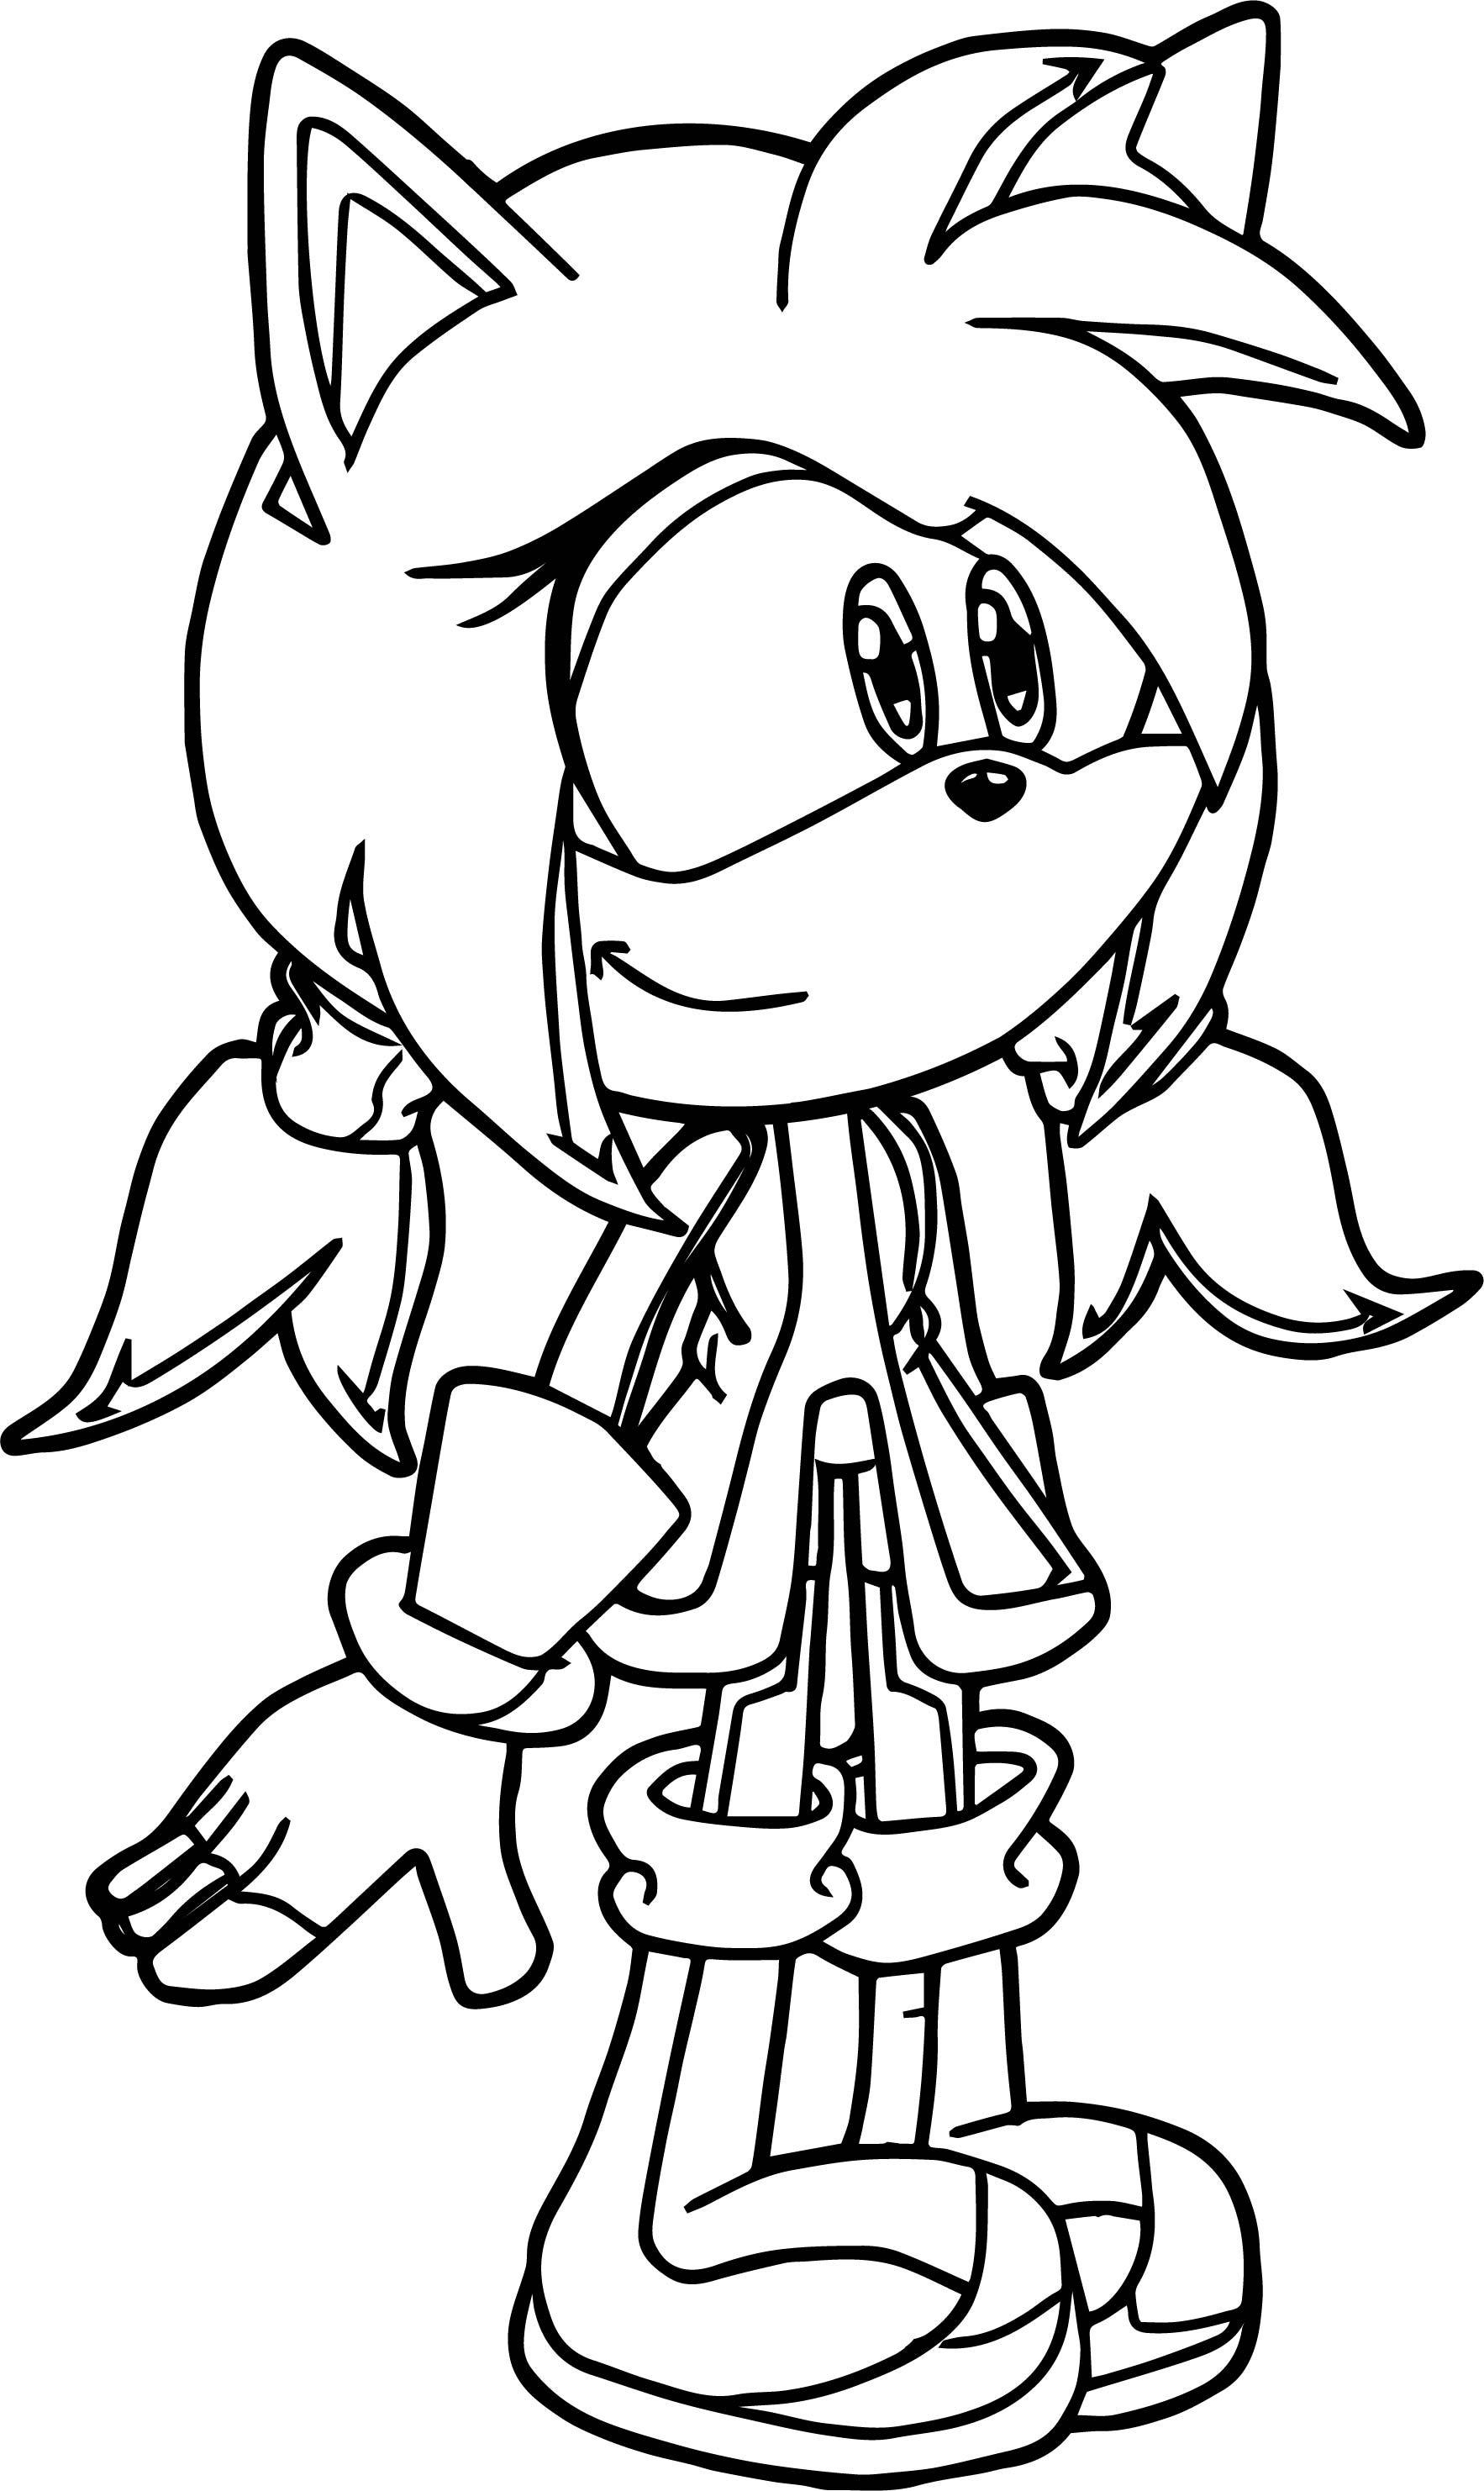 amy coloring pages free printable - photo#49